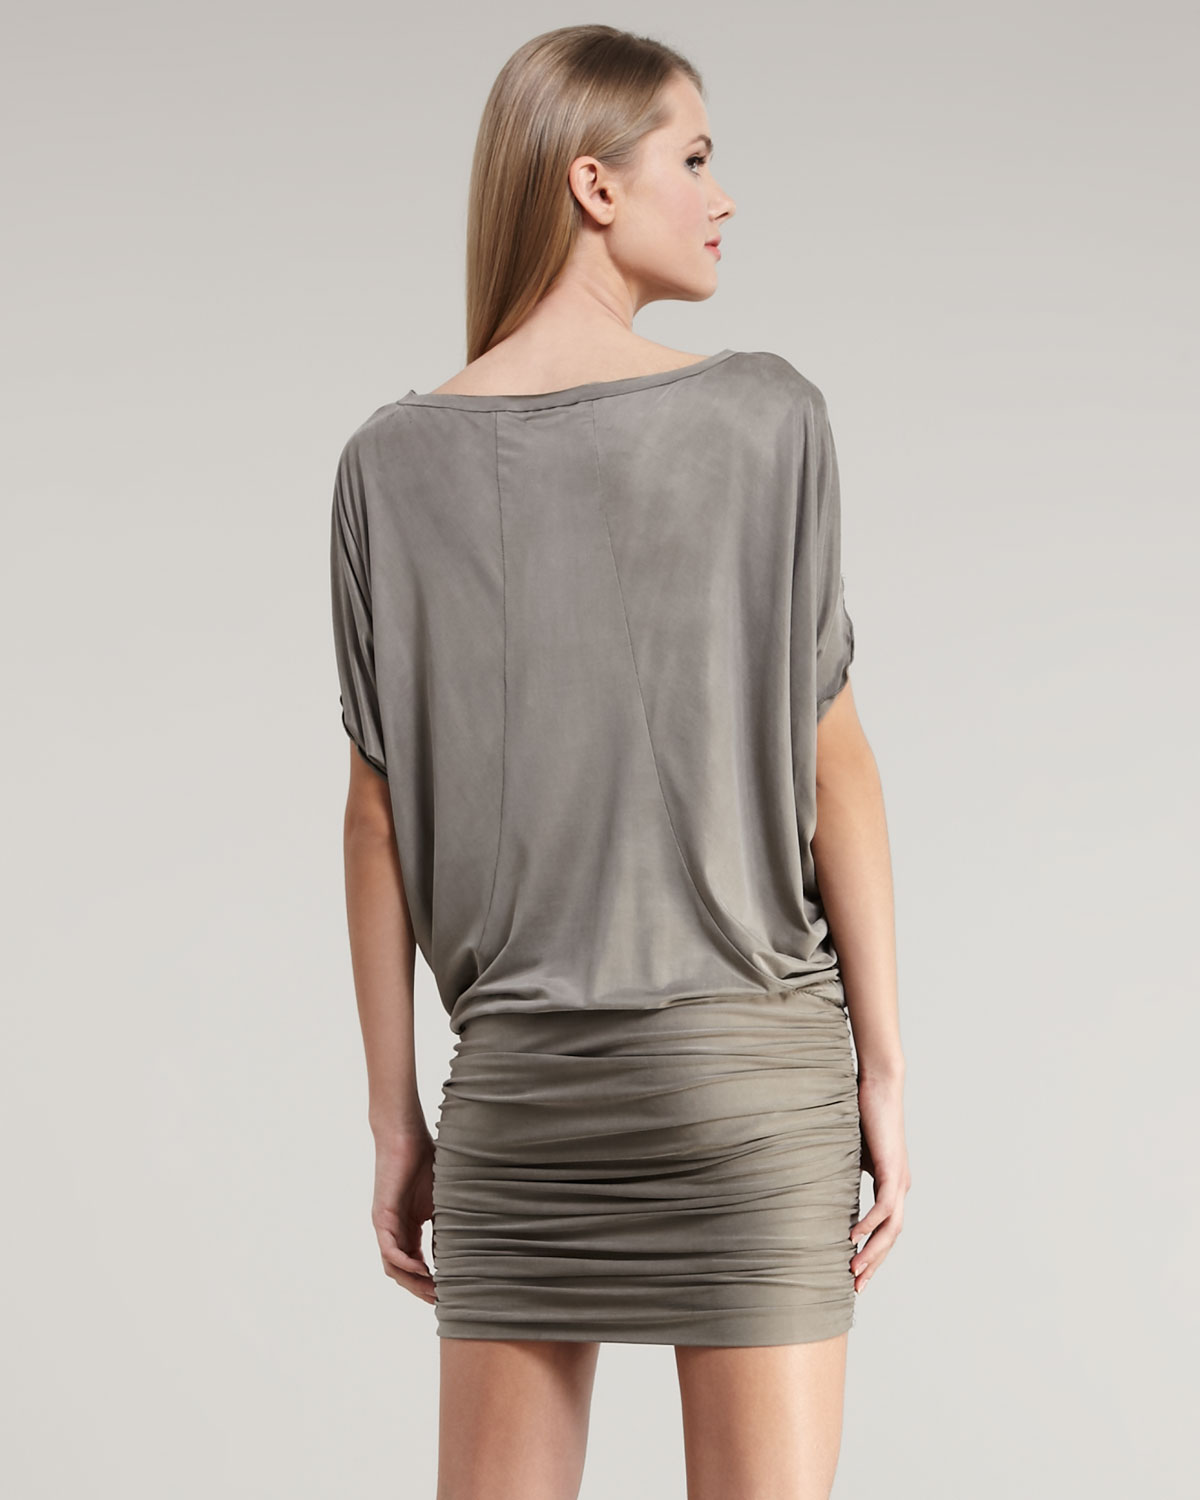 Nicole miller Shortsleeve Jersey Blouson Dress in Gray | Lyst